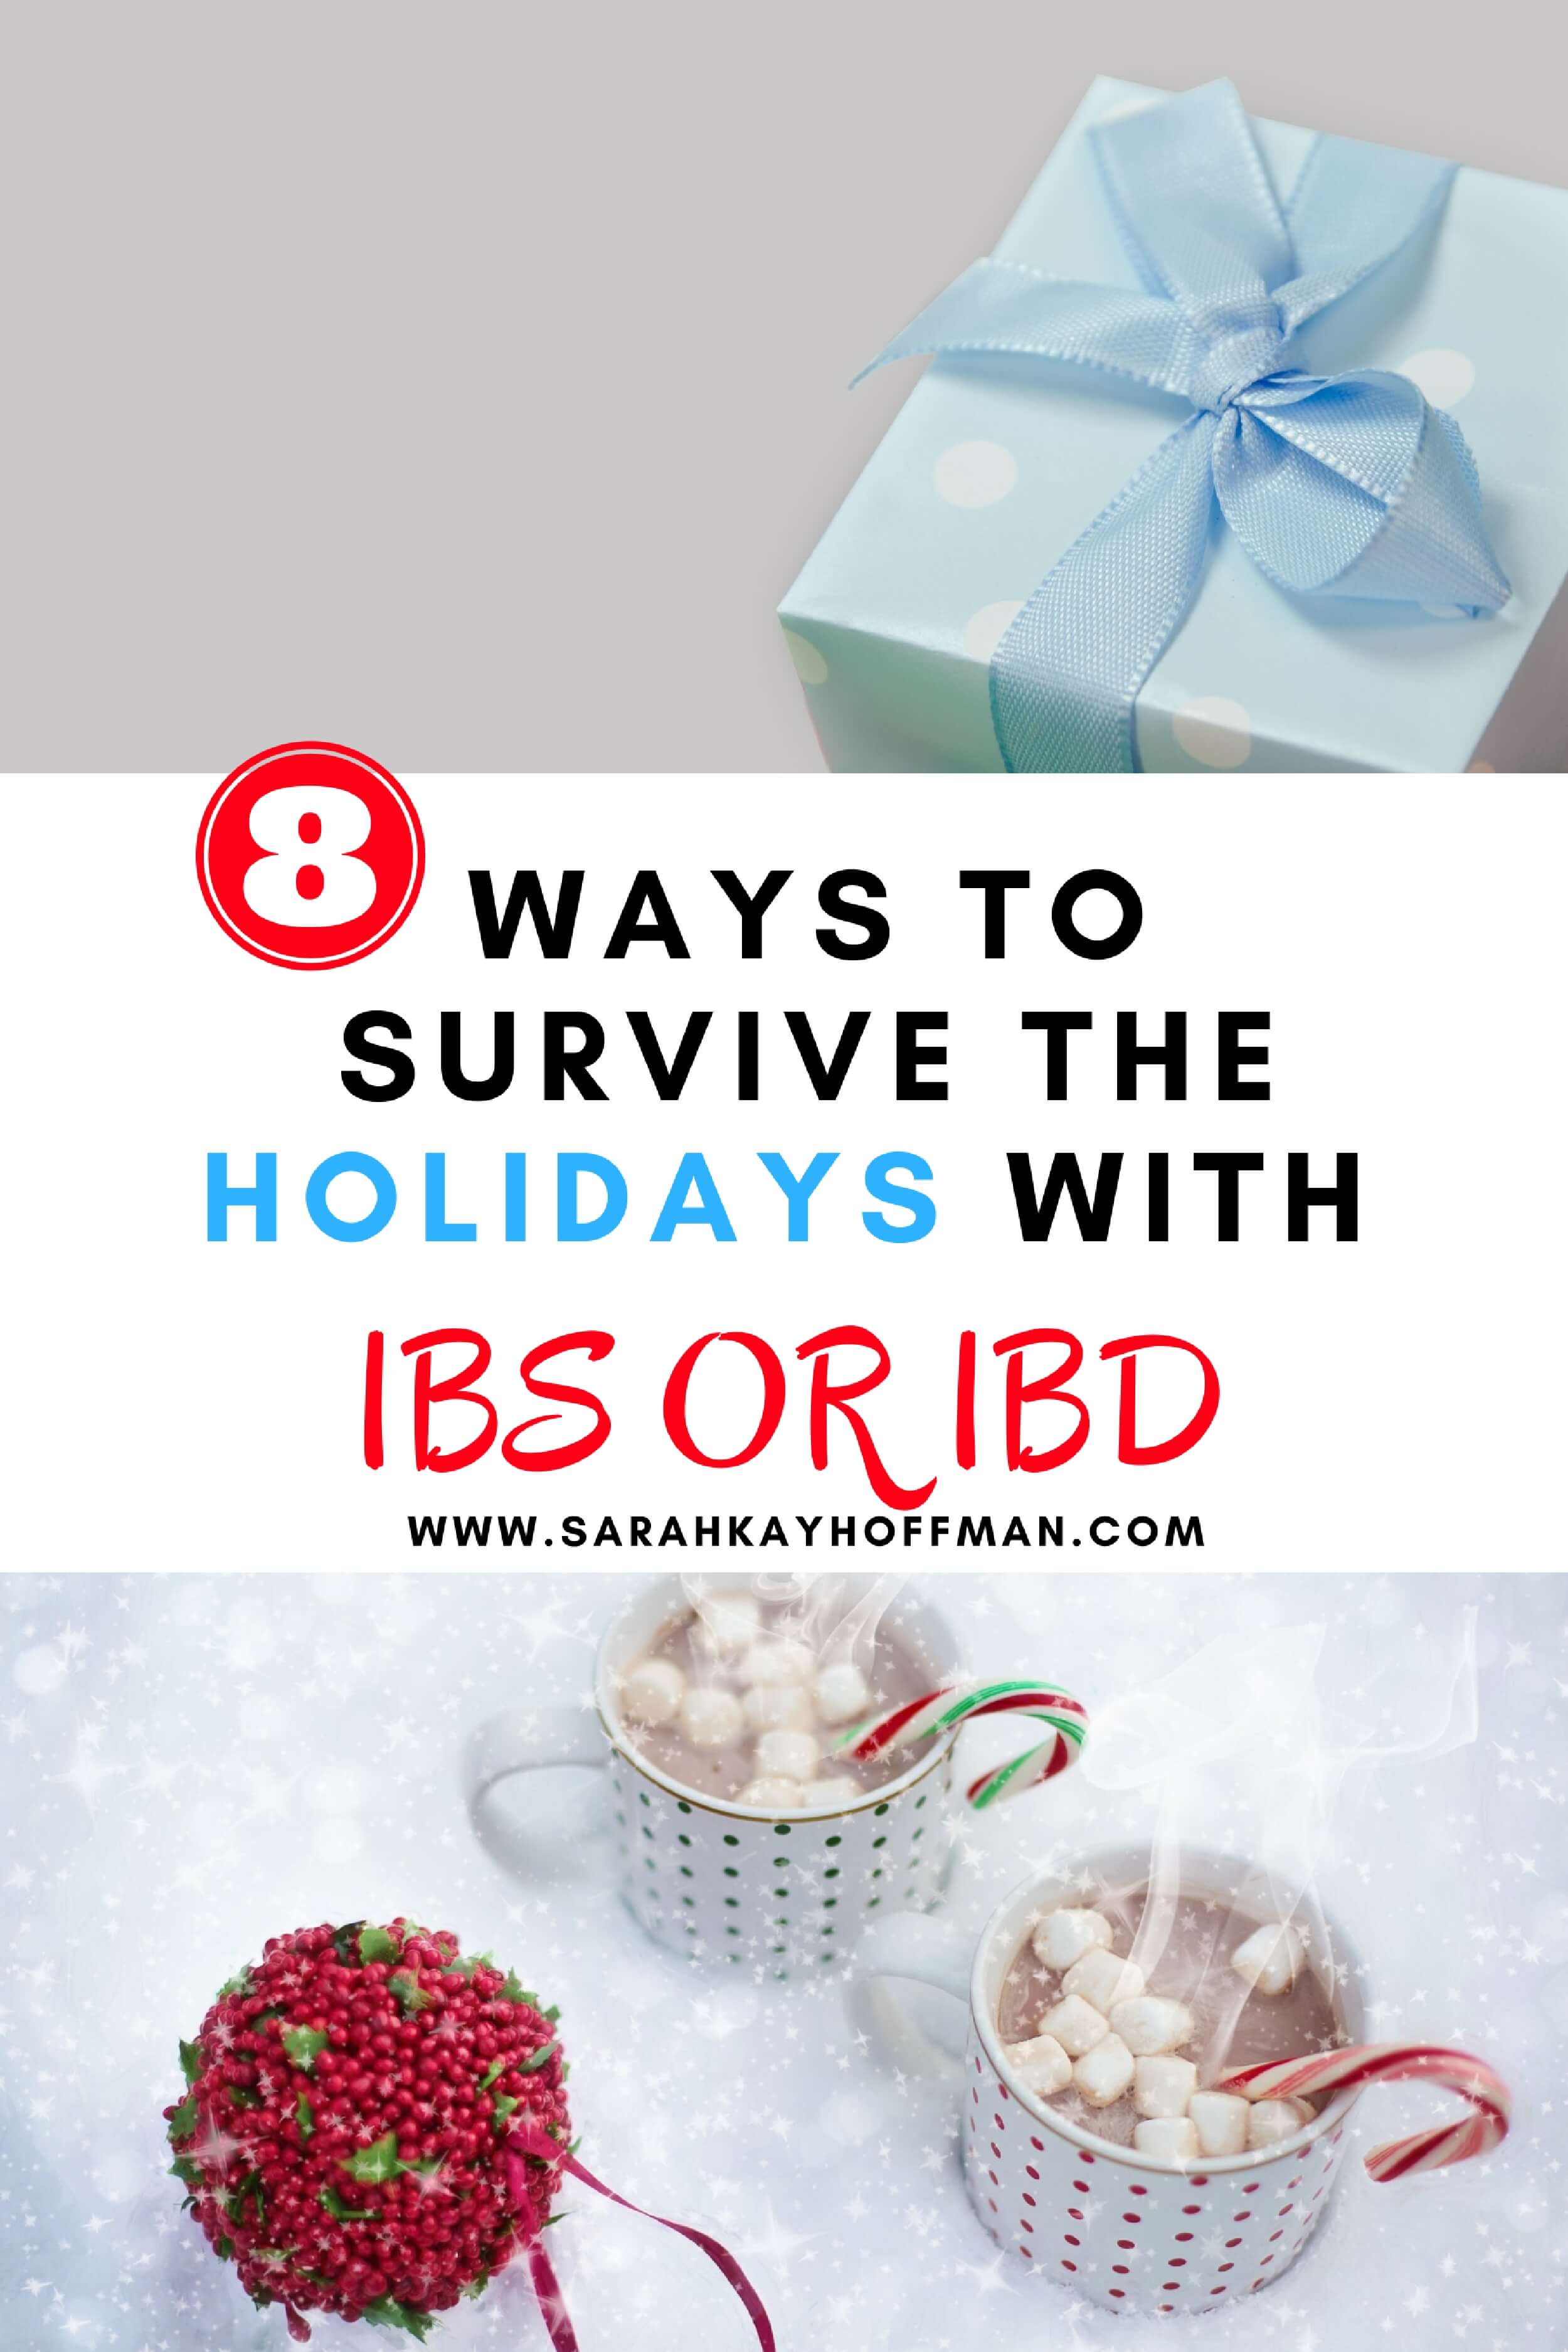 8 ways to survive the holidays with IBS or IBD sarahkayhoffman.com